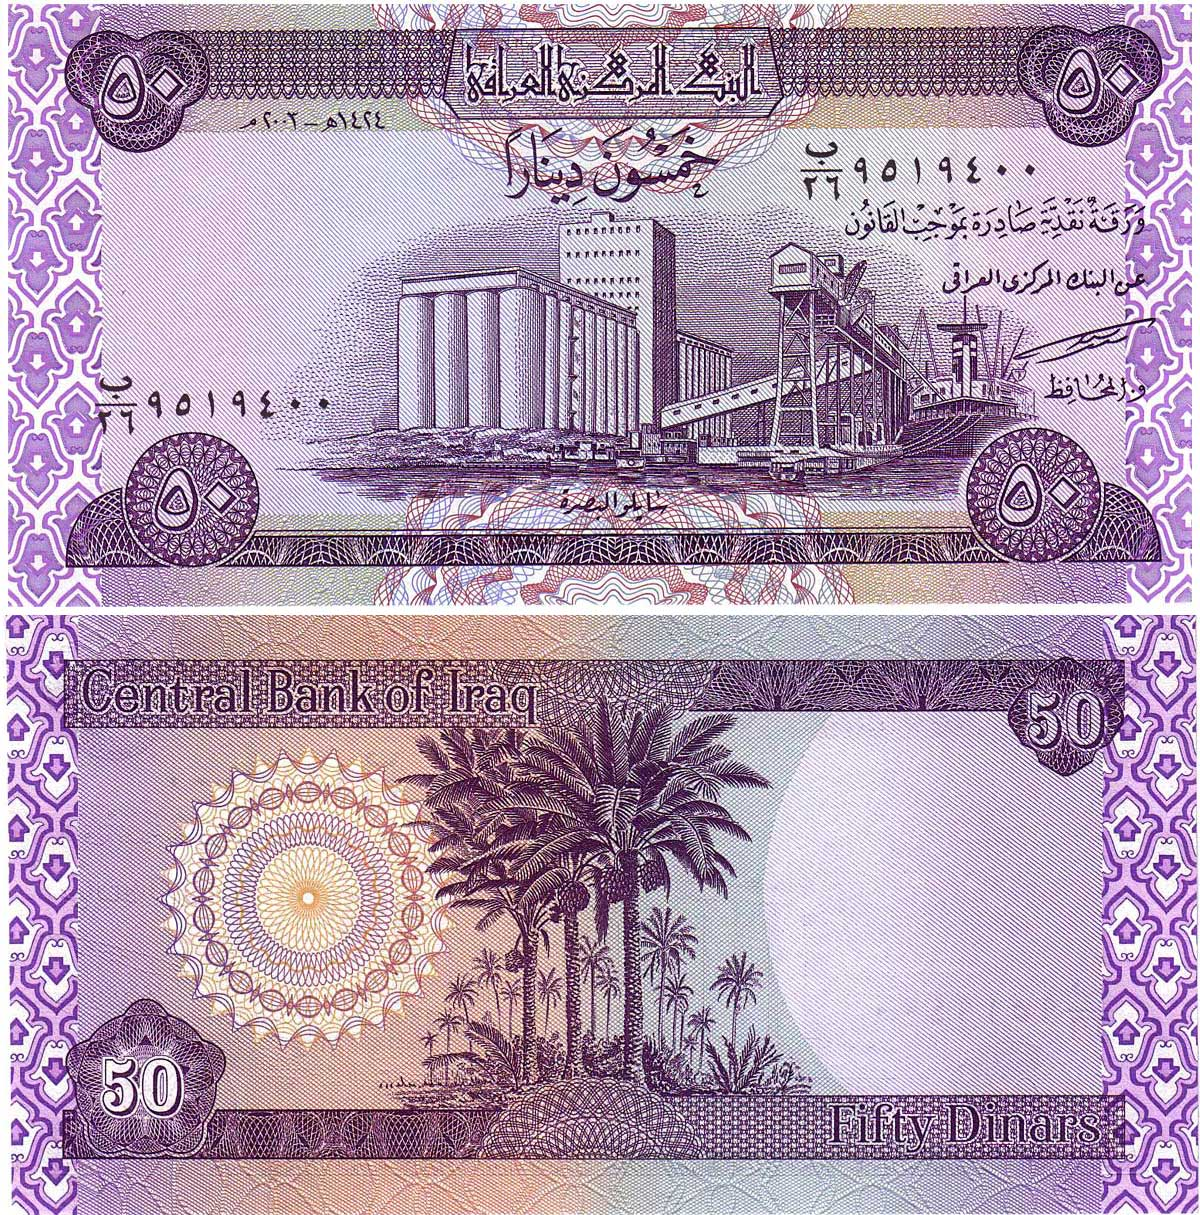 See Detail Of 50 Dinar Bill